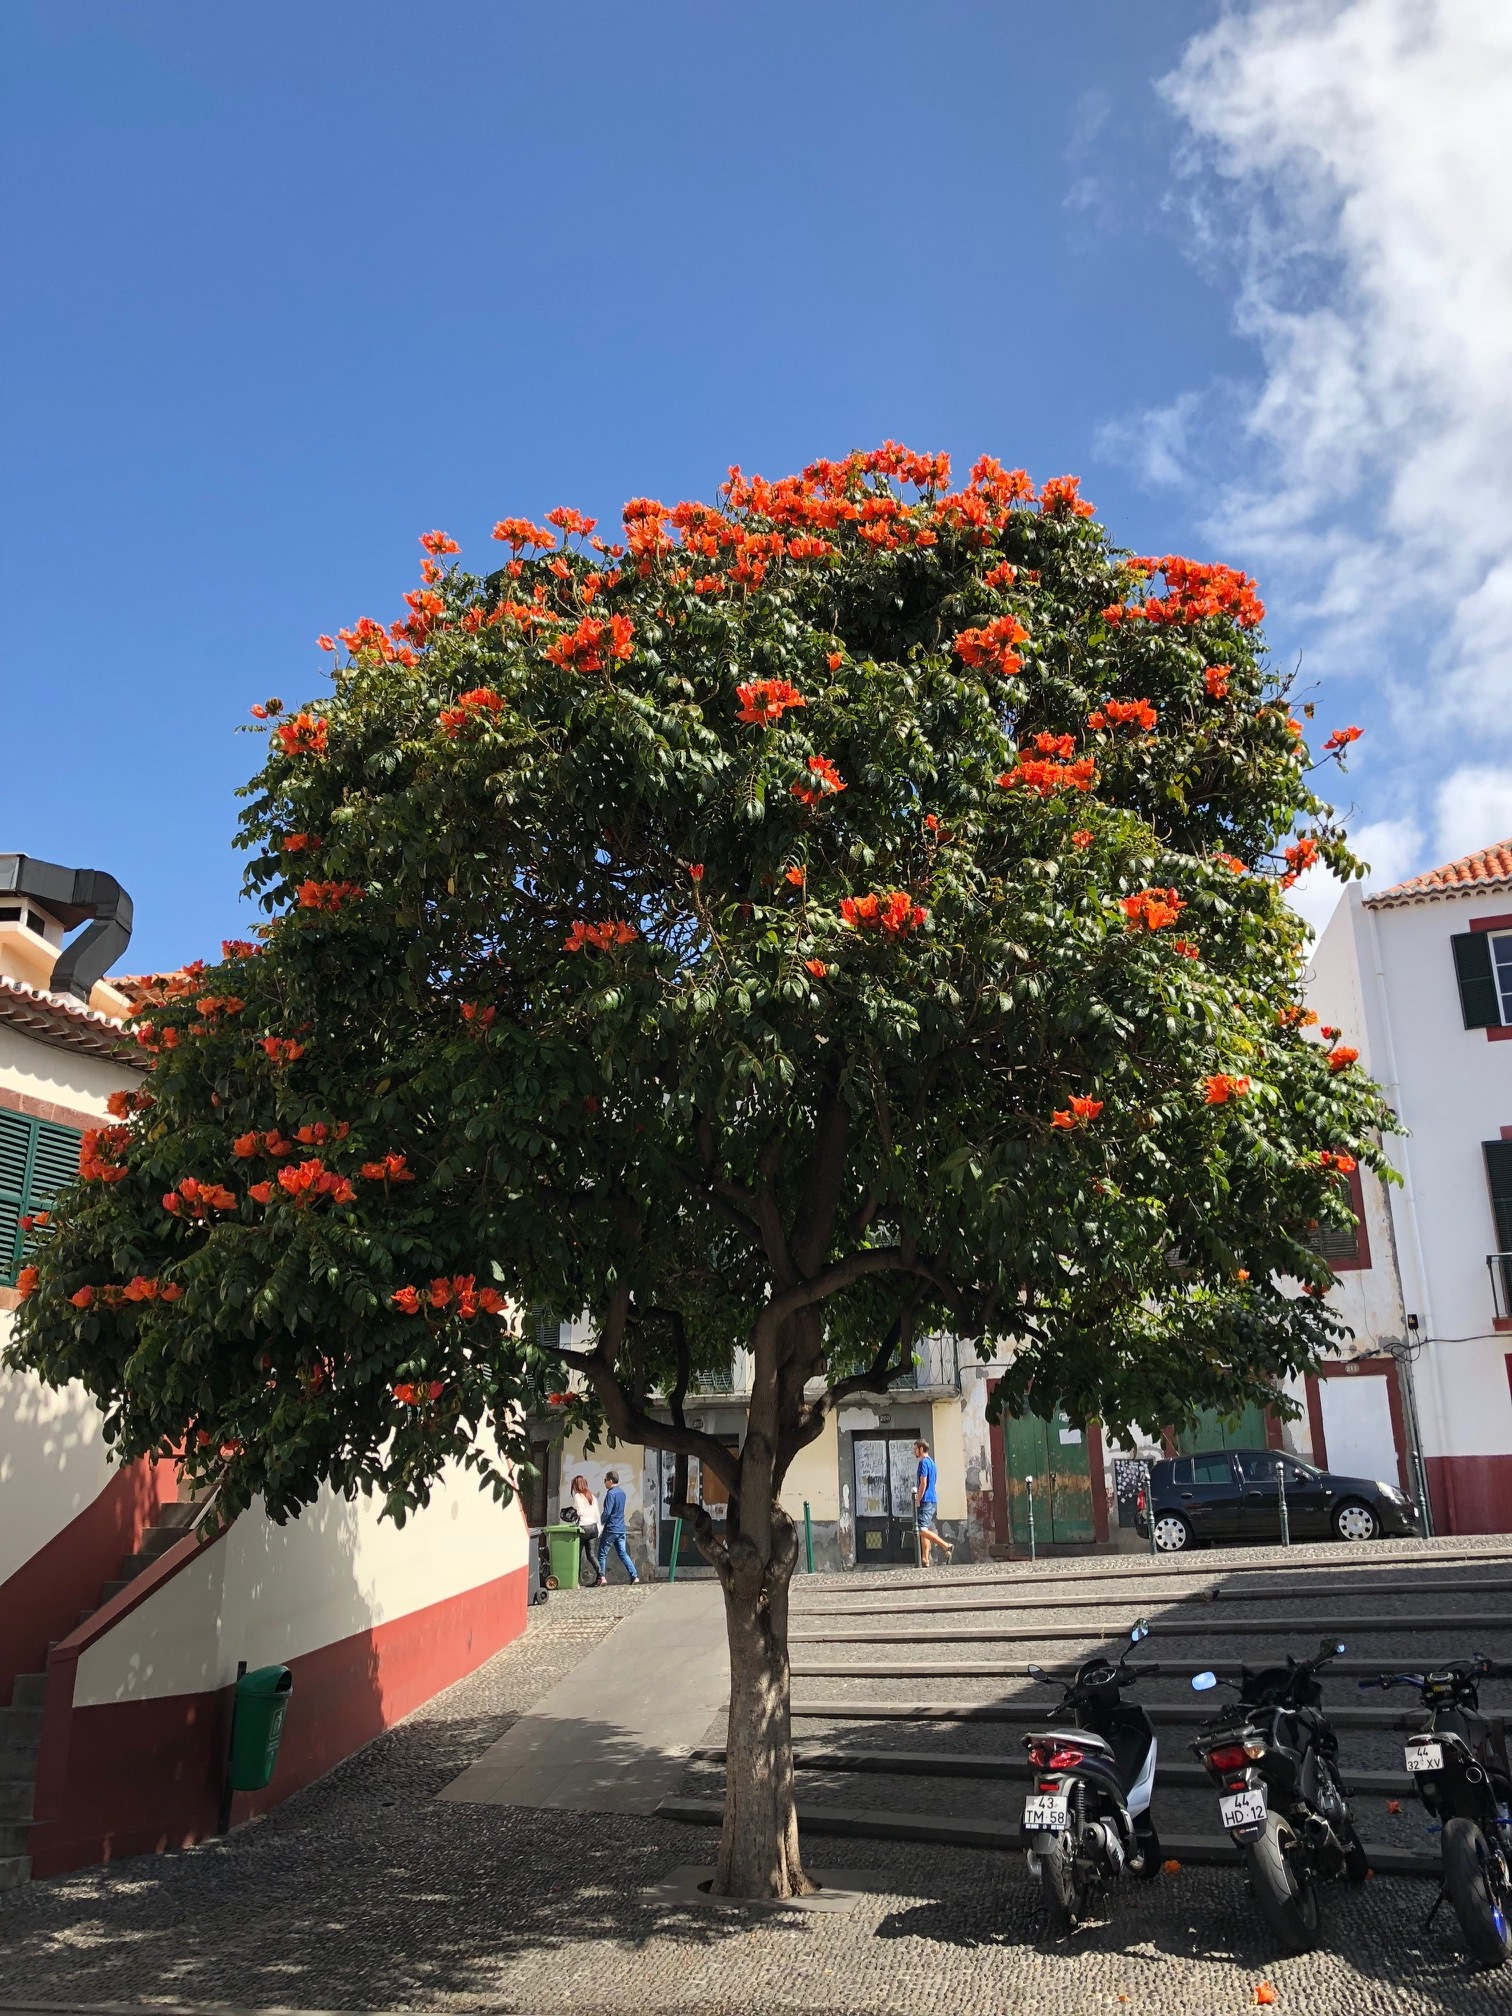 African tulip tree in Funchal's old town